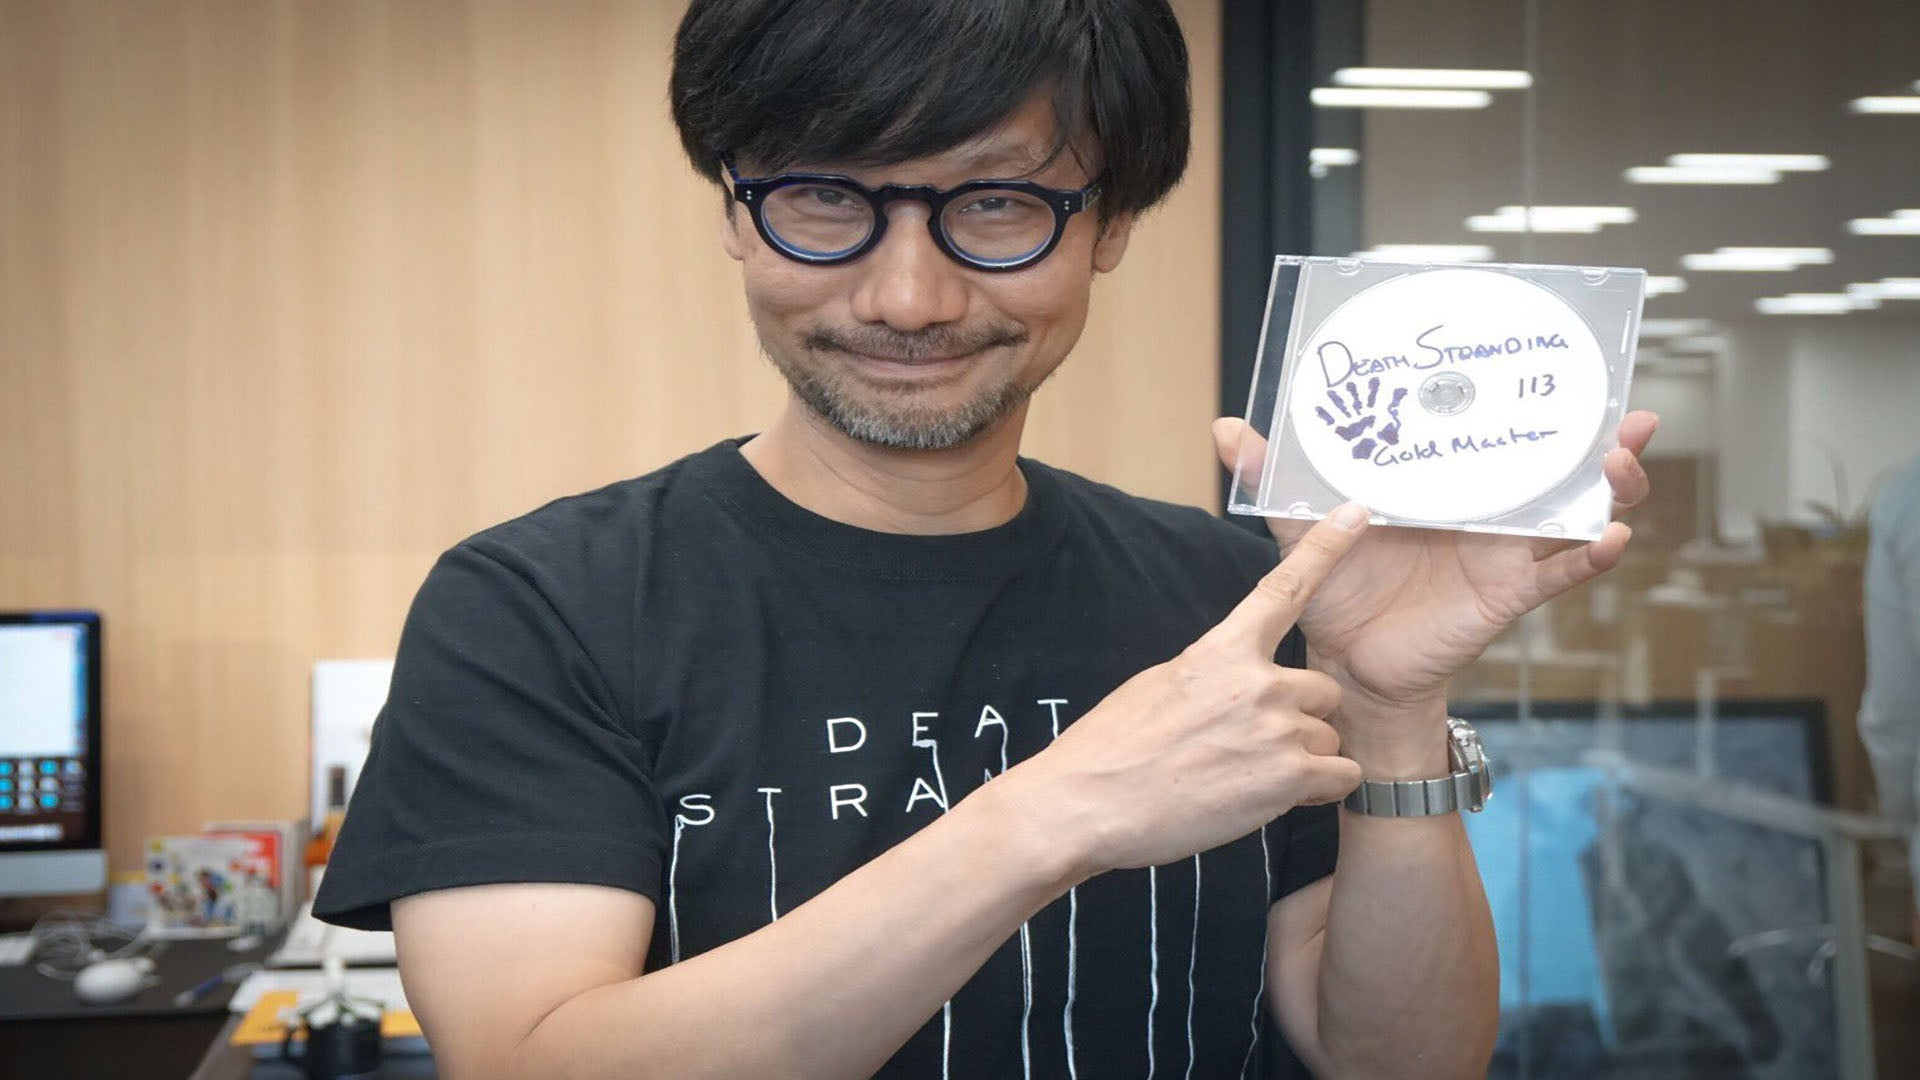 Hideo Kojima reveals the things he wants to work on after Death Stranding